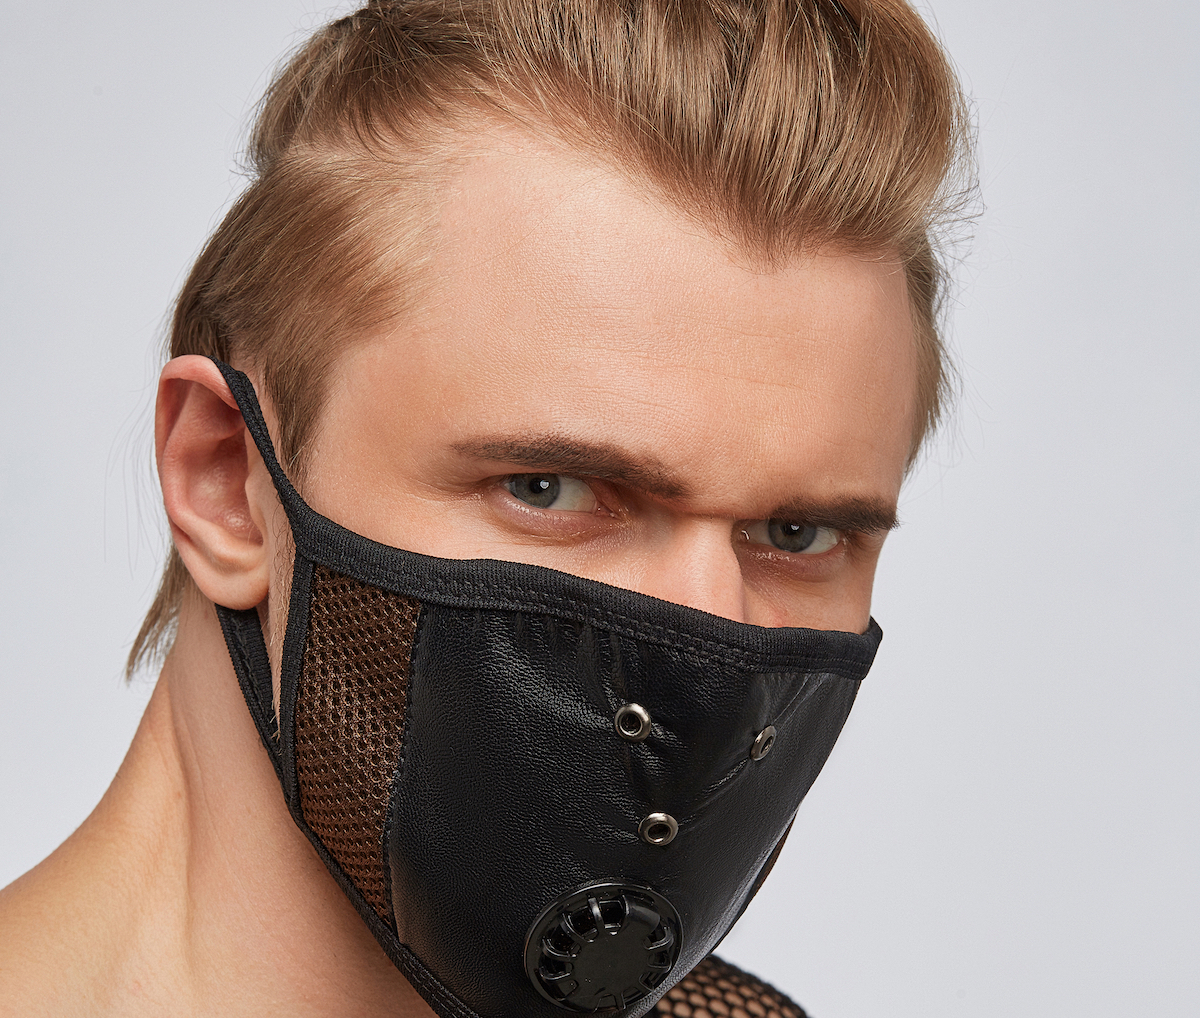 Close-up portrait of a blond man, wearing a black leather mask with brown mesh under it and ventilation openings.